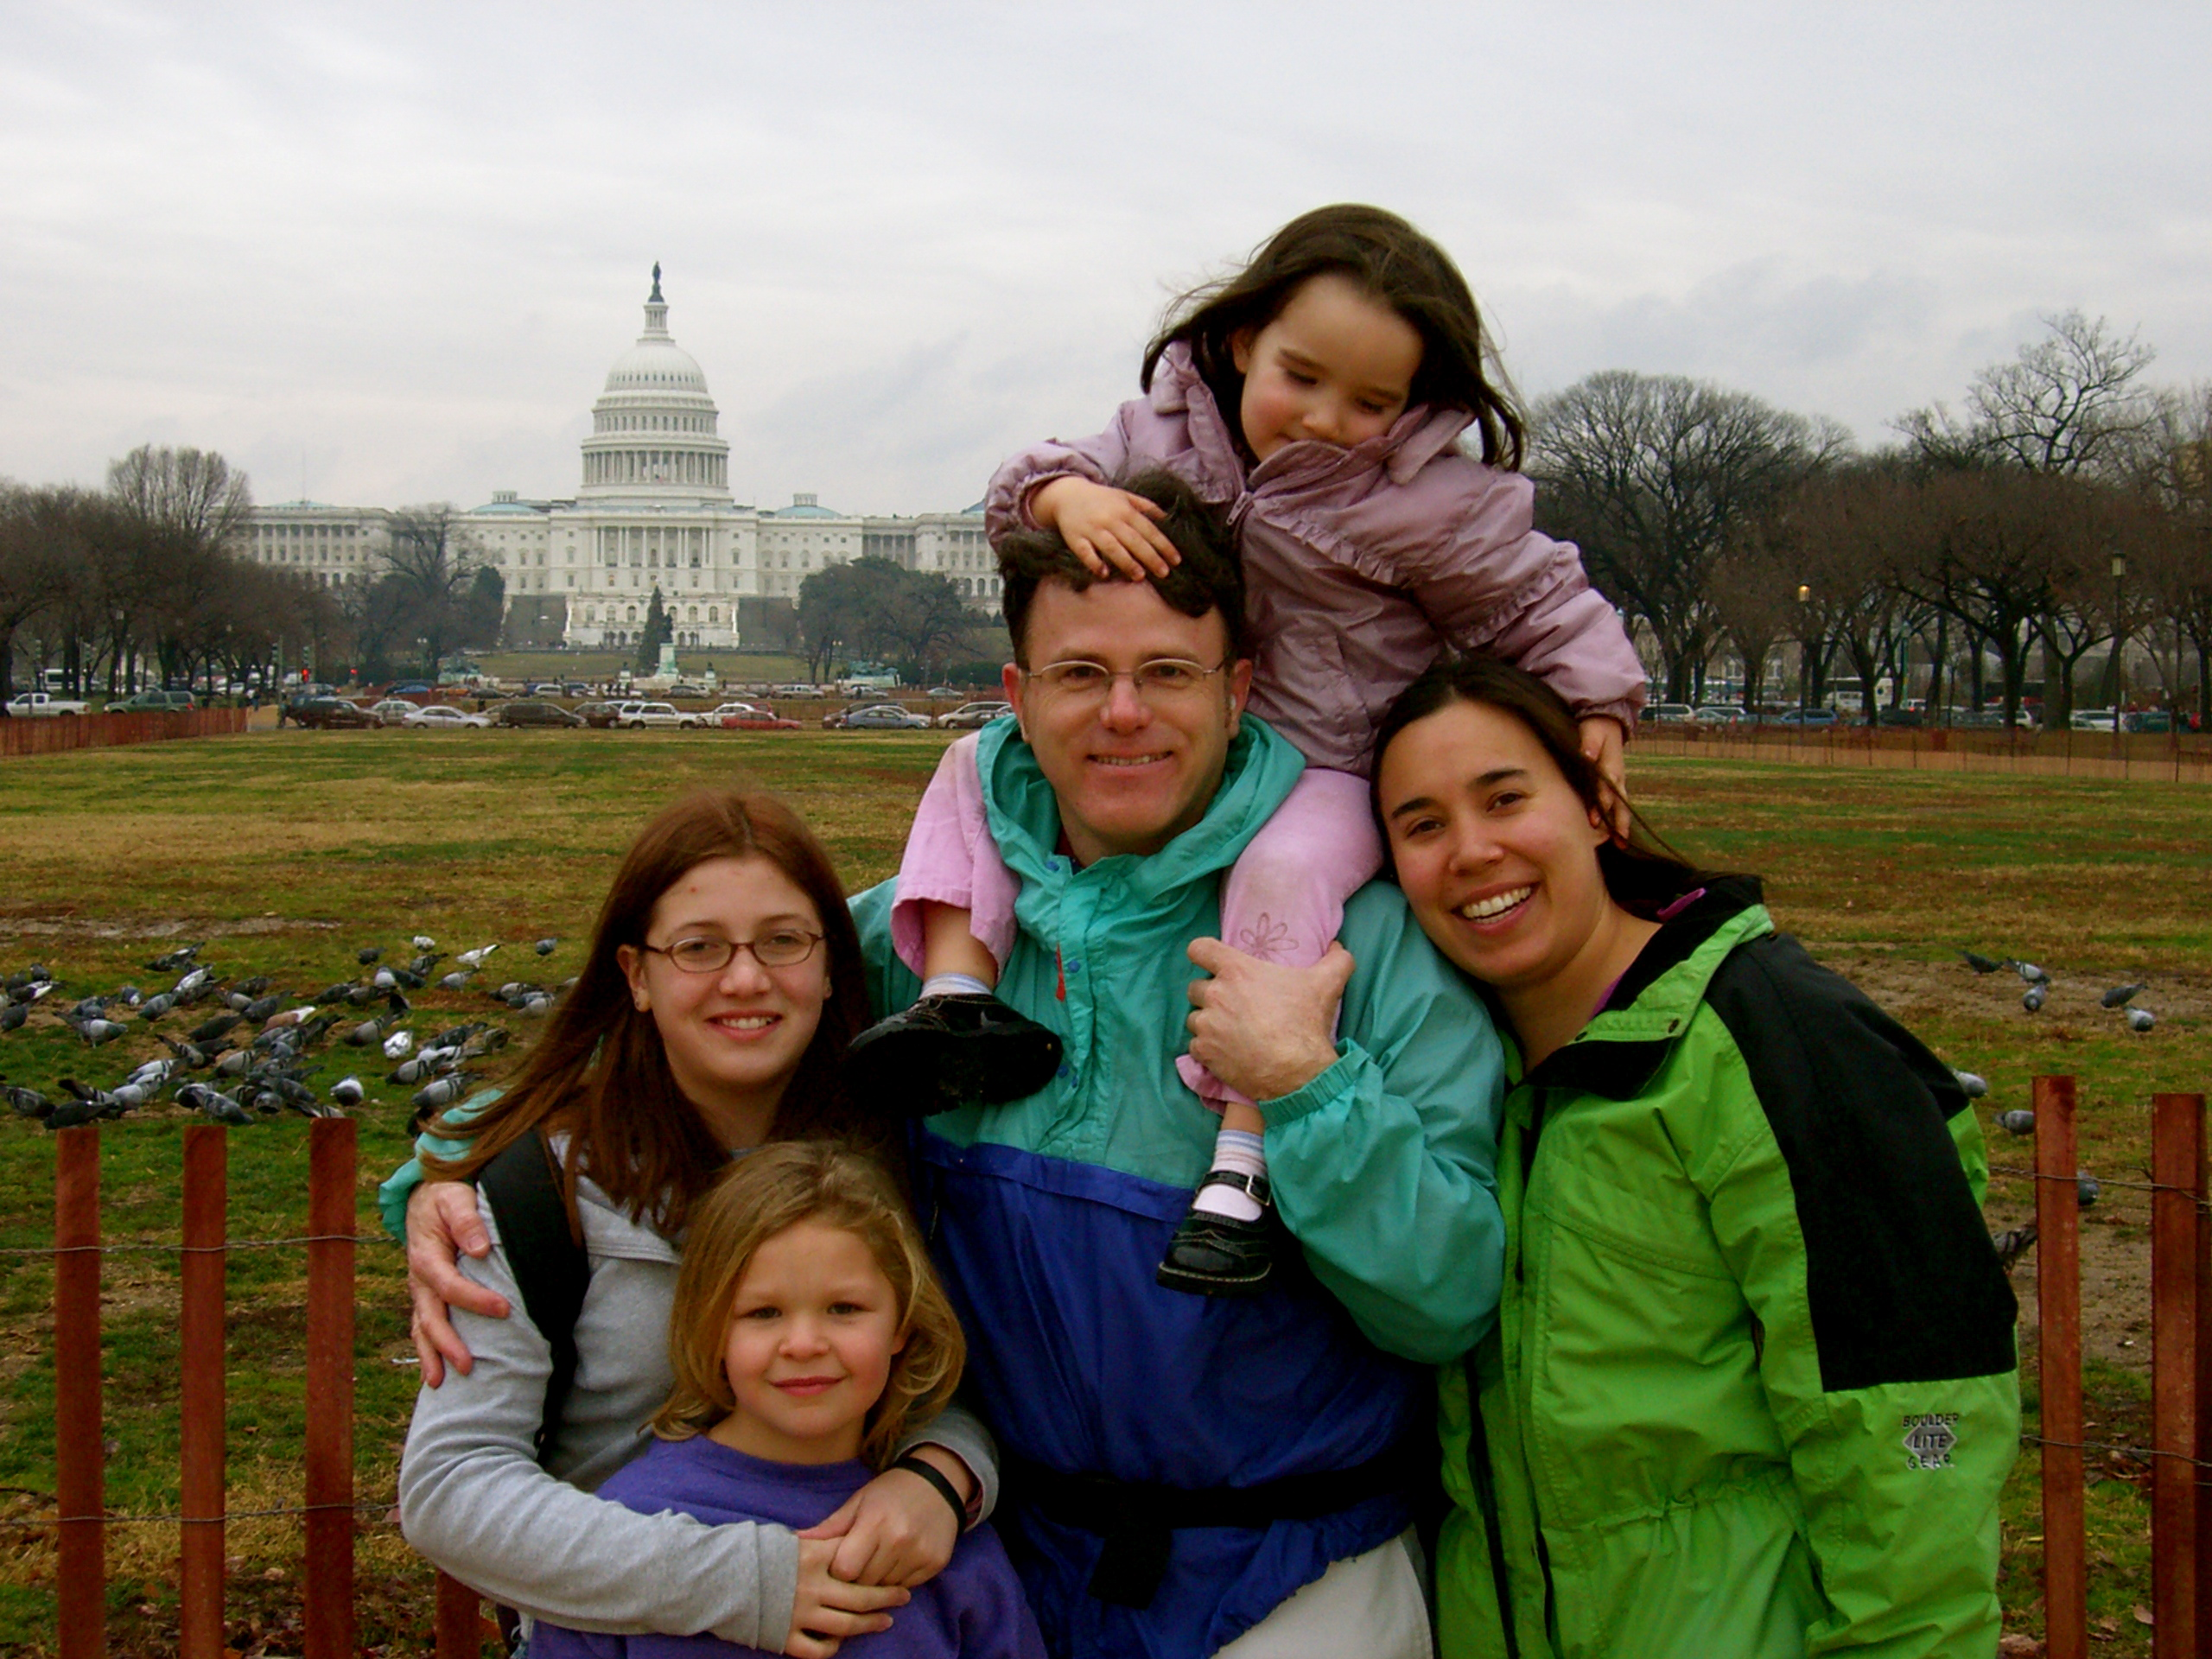 Touring Washington, D.C., late December 2005 after spending Christmas in Virginia.